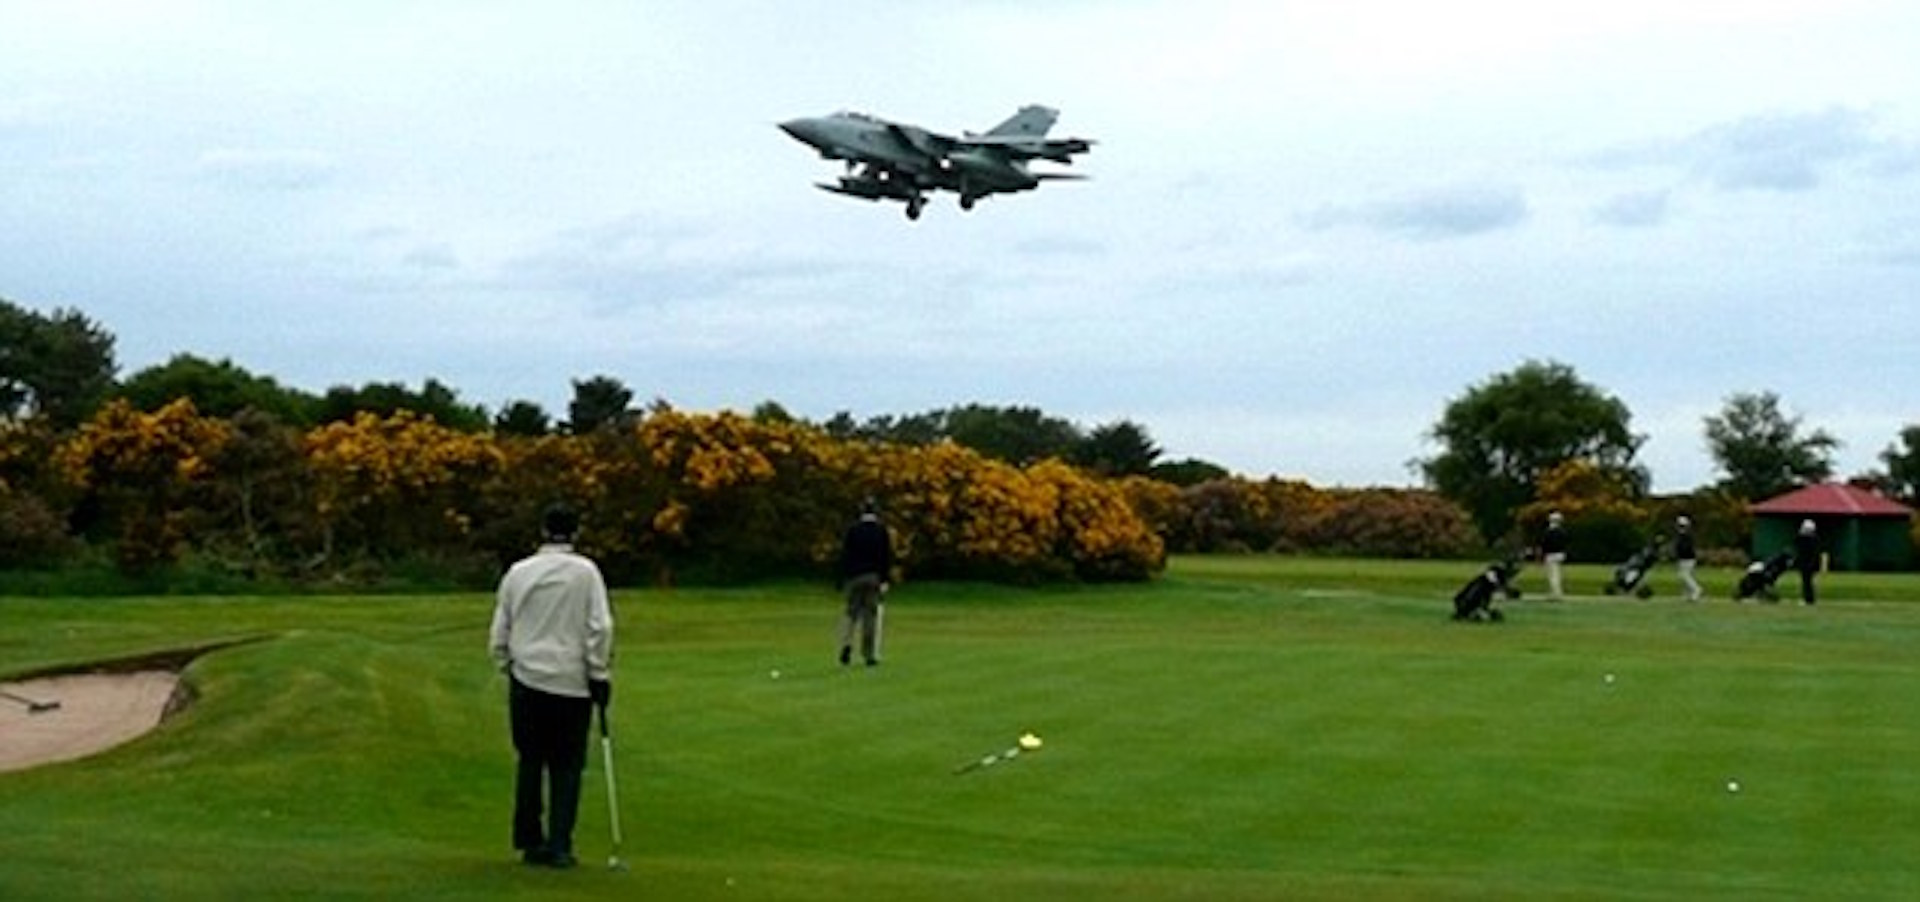 RAF Marham's golf course loses 4 holes